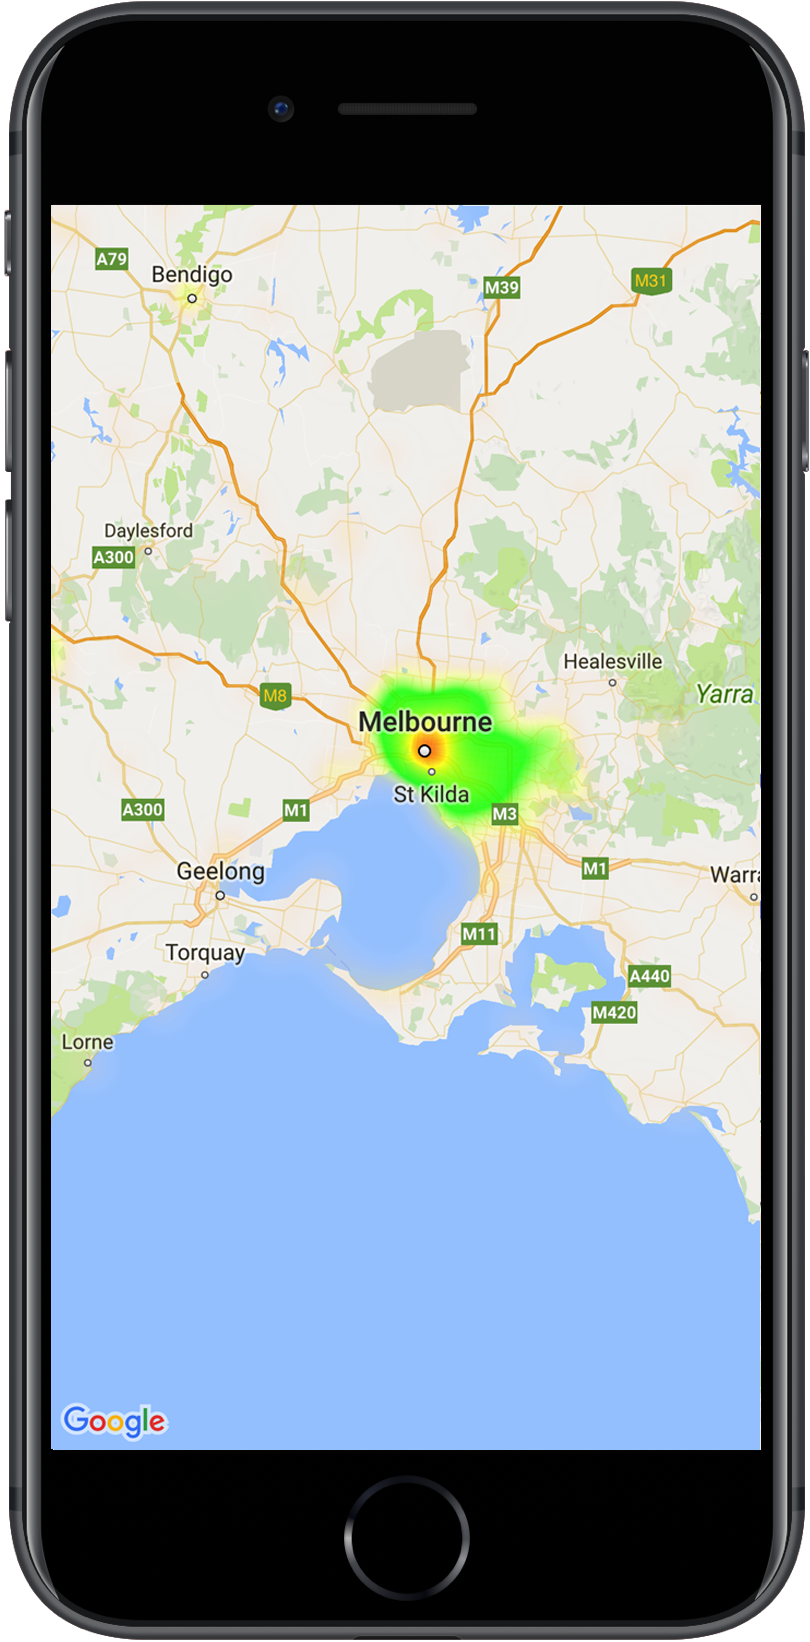 A map with a heatmap showing location of police stations